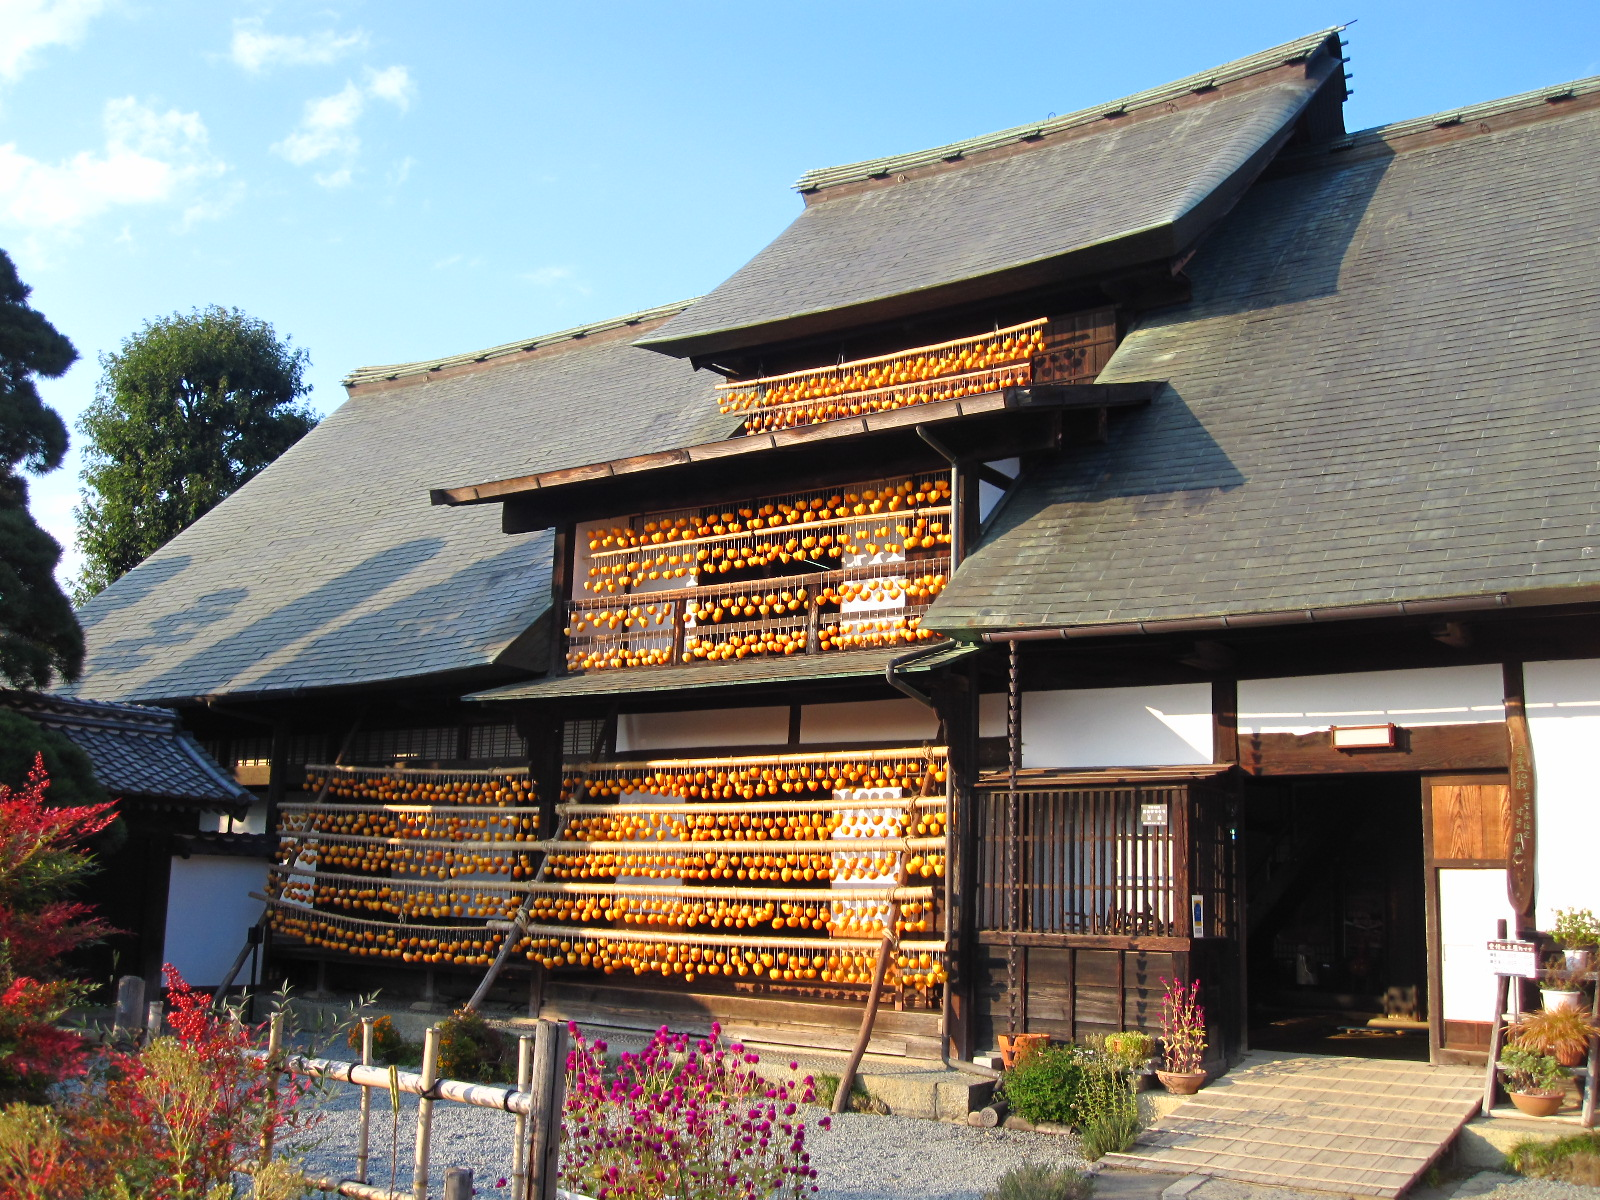 Persimmons hanging to dry under the eaves of the  Kanzo Yashiki , a grand  Koshu Minka  building.